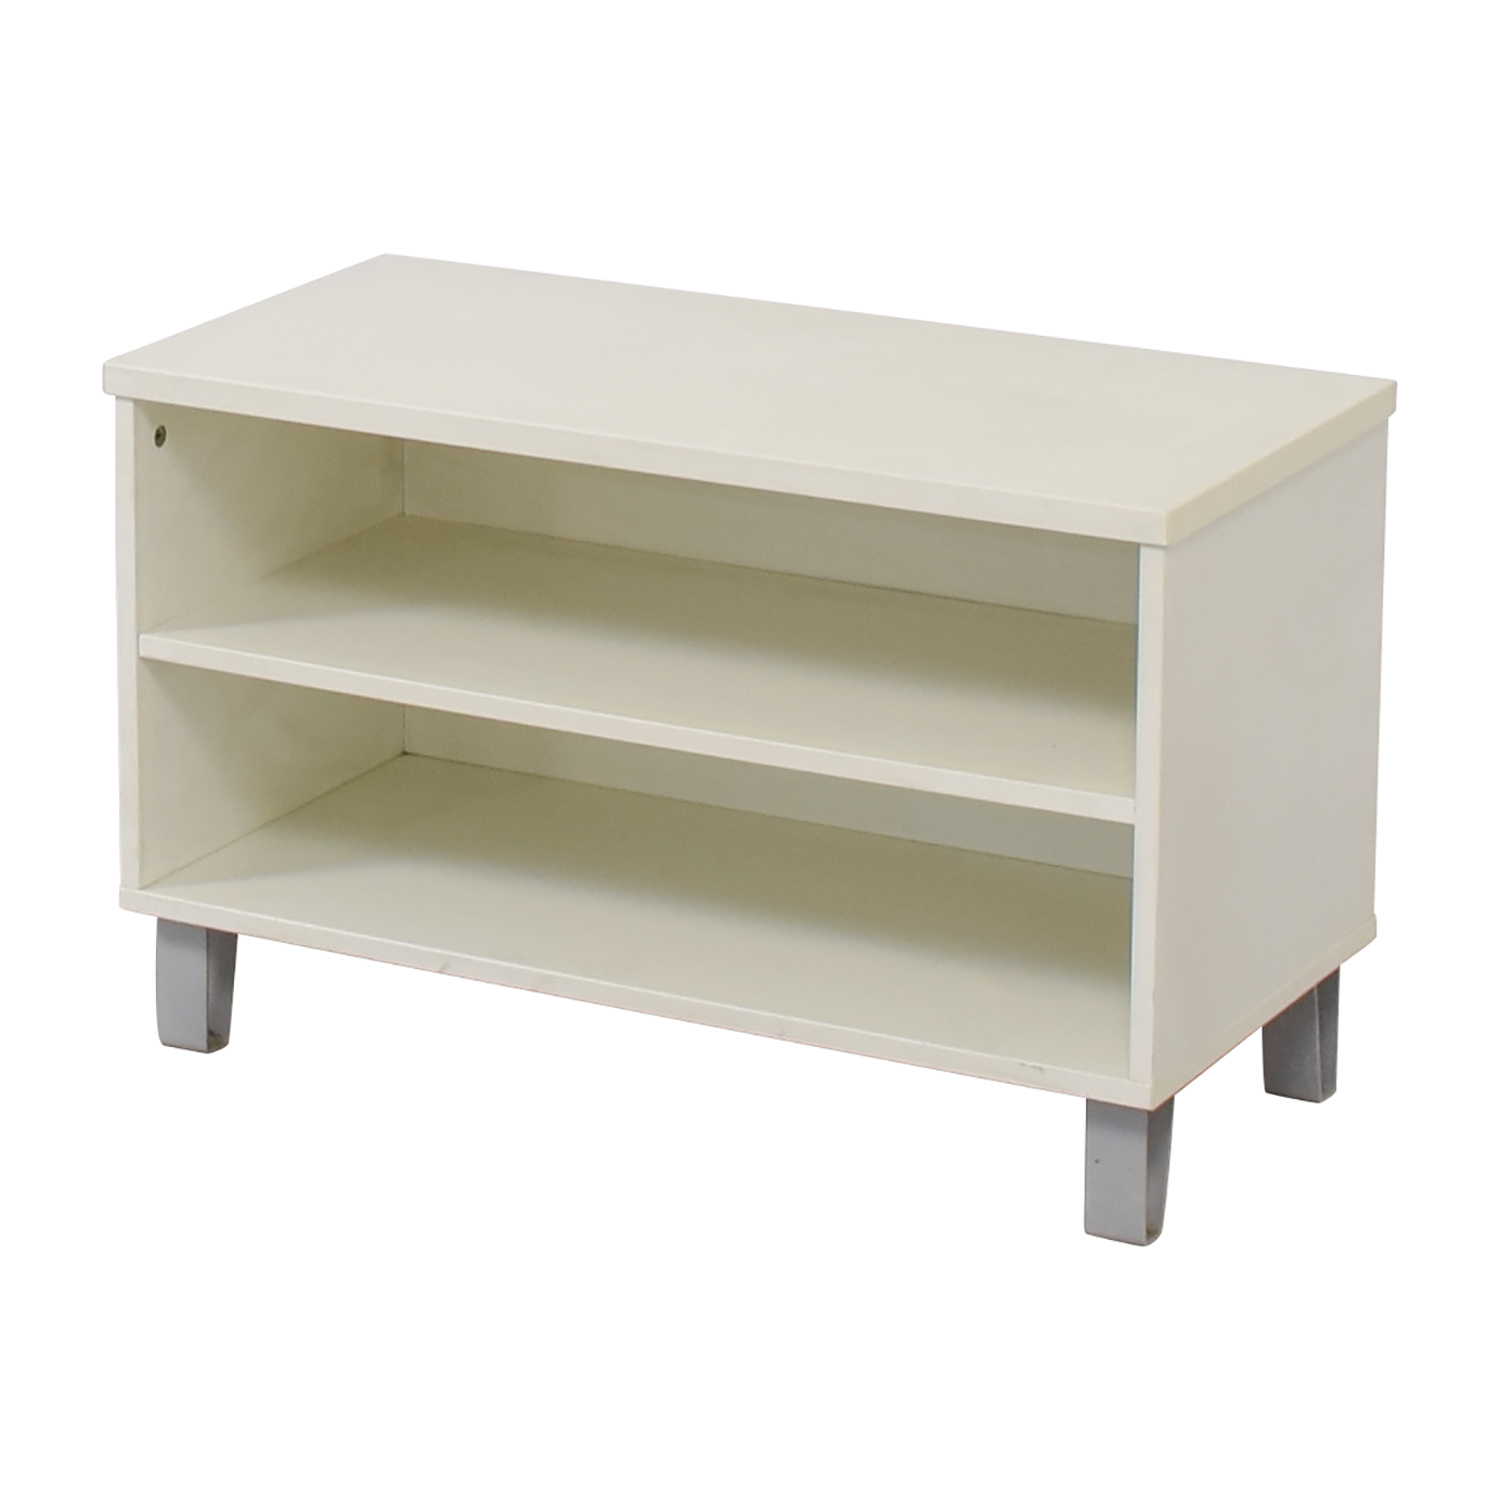 buy IKEA White Shelving Unit IKEA Storage